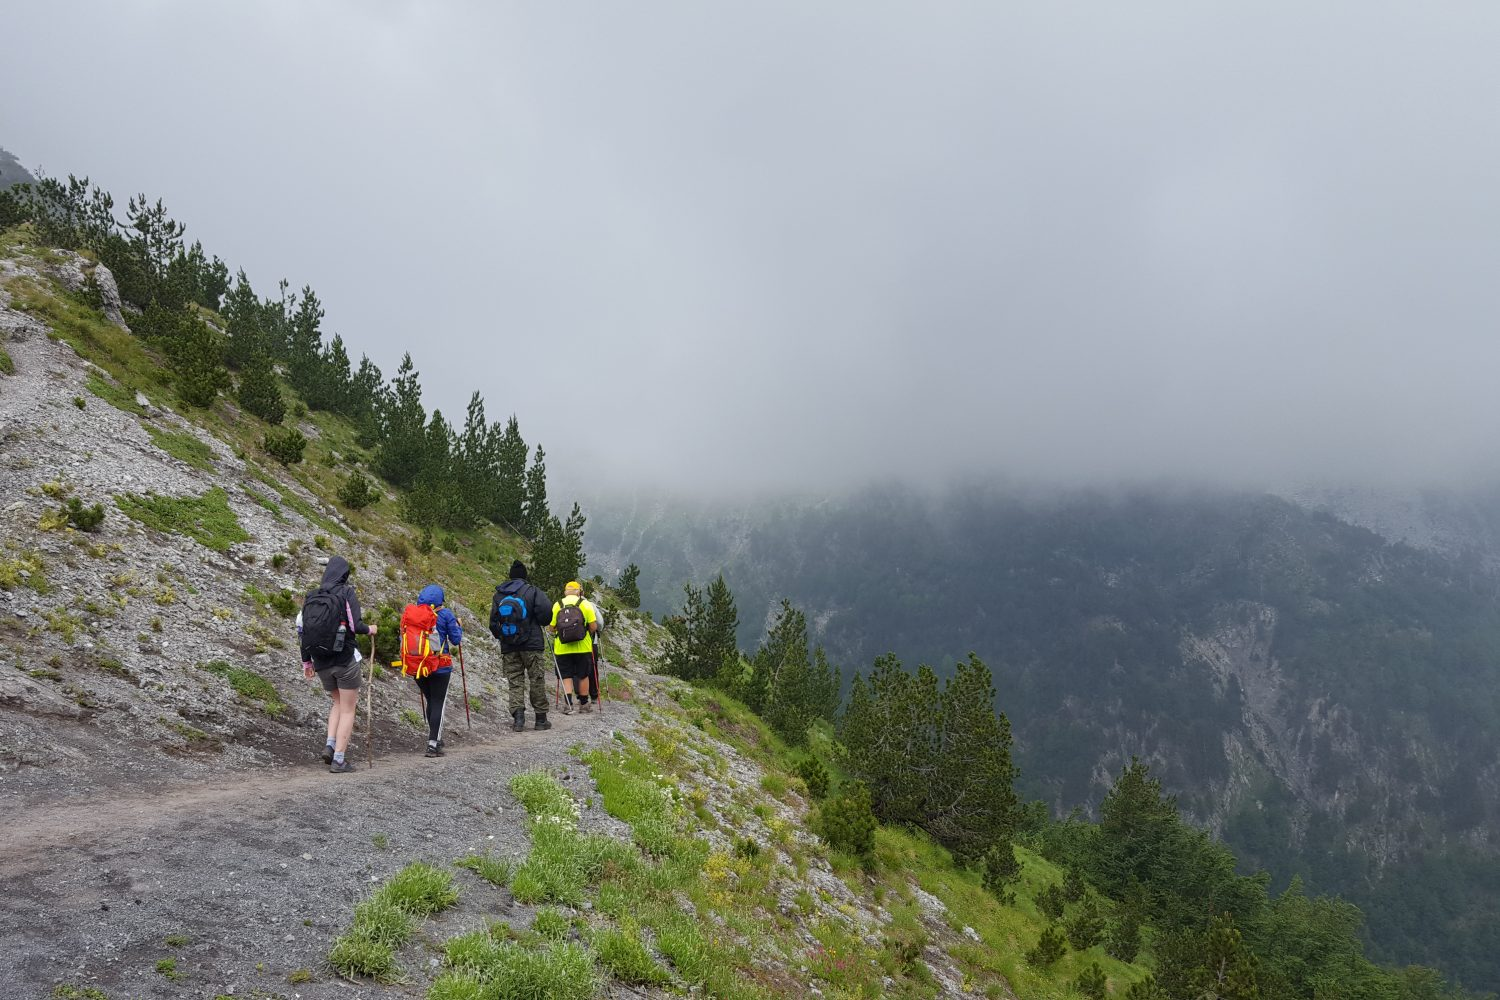 Group of hikers in the Peaks of the balkans